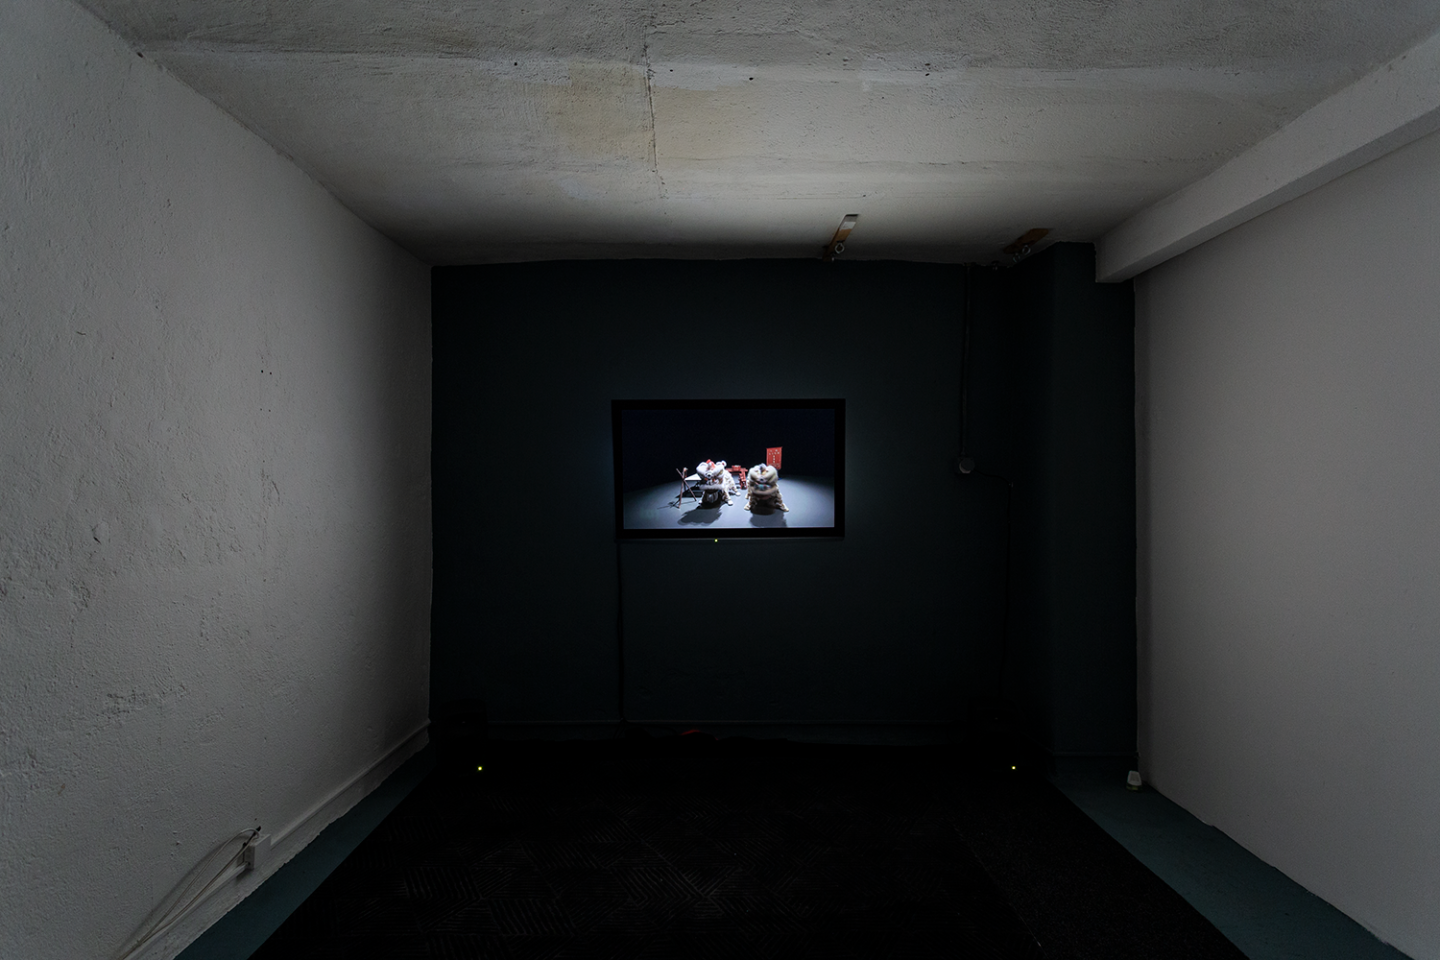 Installation View Groupshow «Double Take / view on Samson Young, Muted Situation 2 (Muted Lion Dance), 2014» at Last Tango Zurich, 2018 / Photography: Kilian Bannwart / Courtesy: the artists and Last Tango